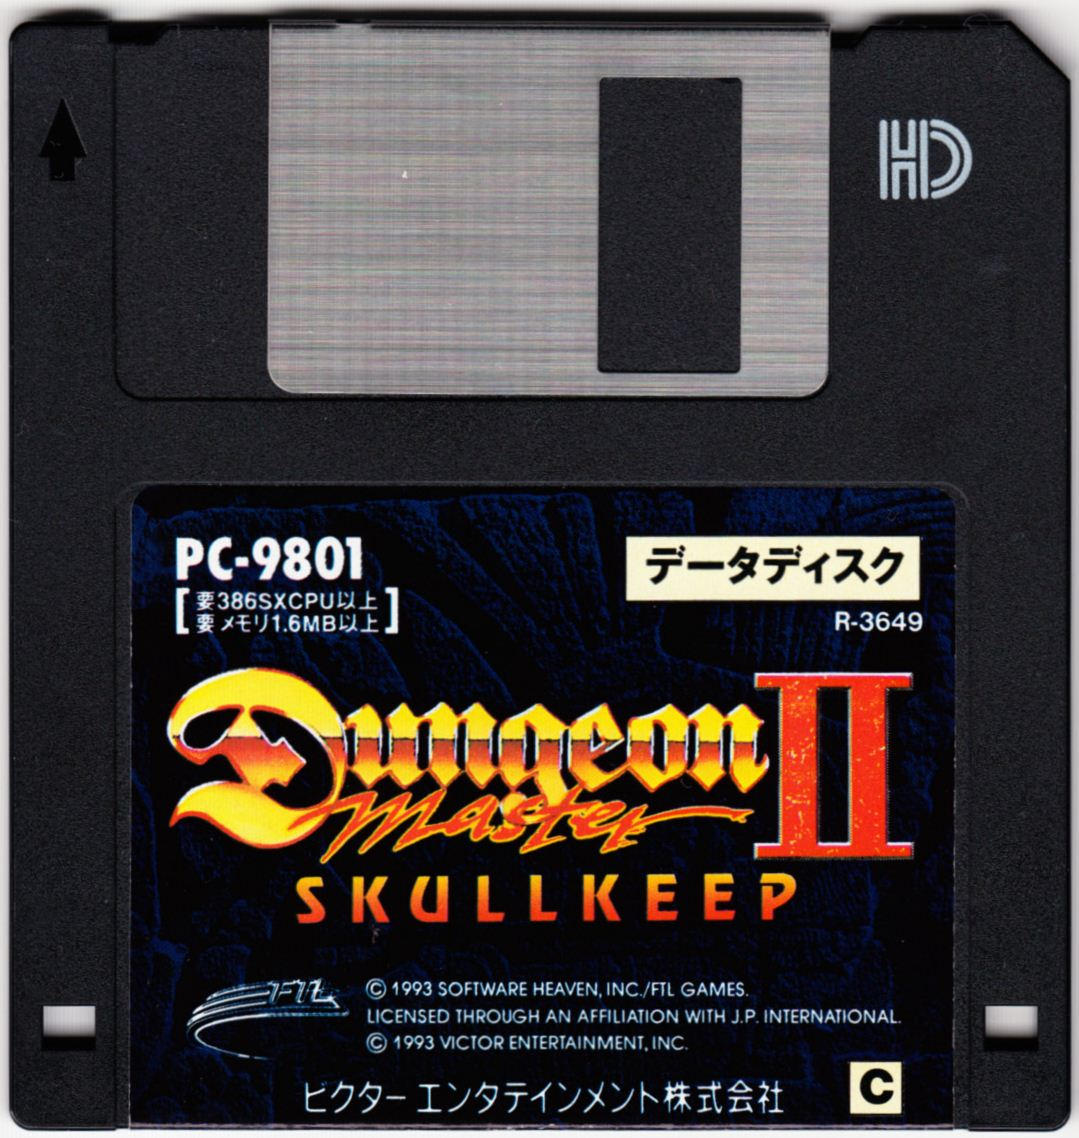 Game - Dungeon Master II - JP - PC-9801 - 3.5-inch - Disk C Data Disk - Front - Scan